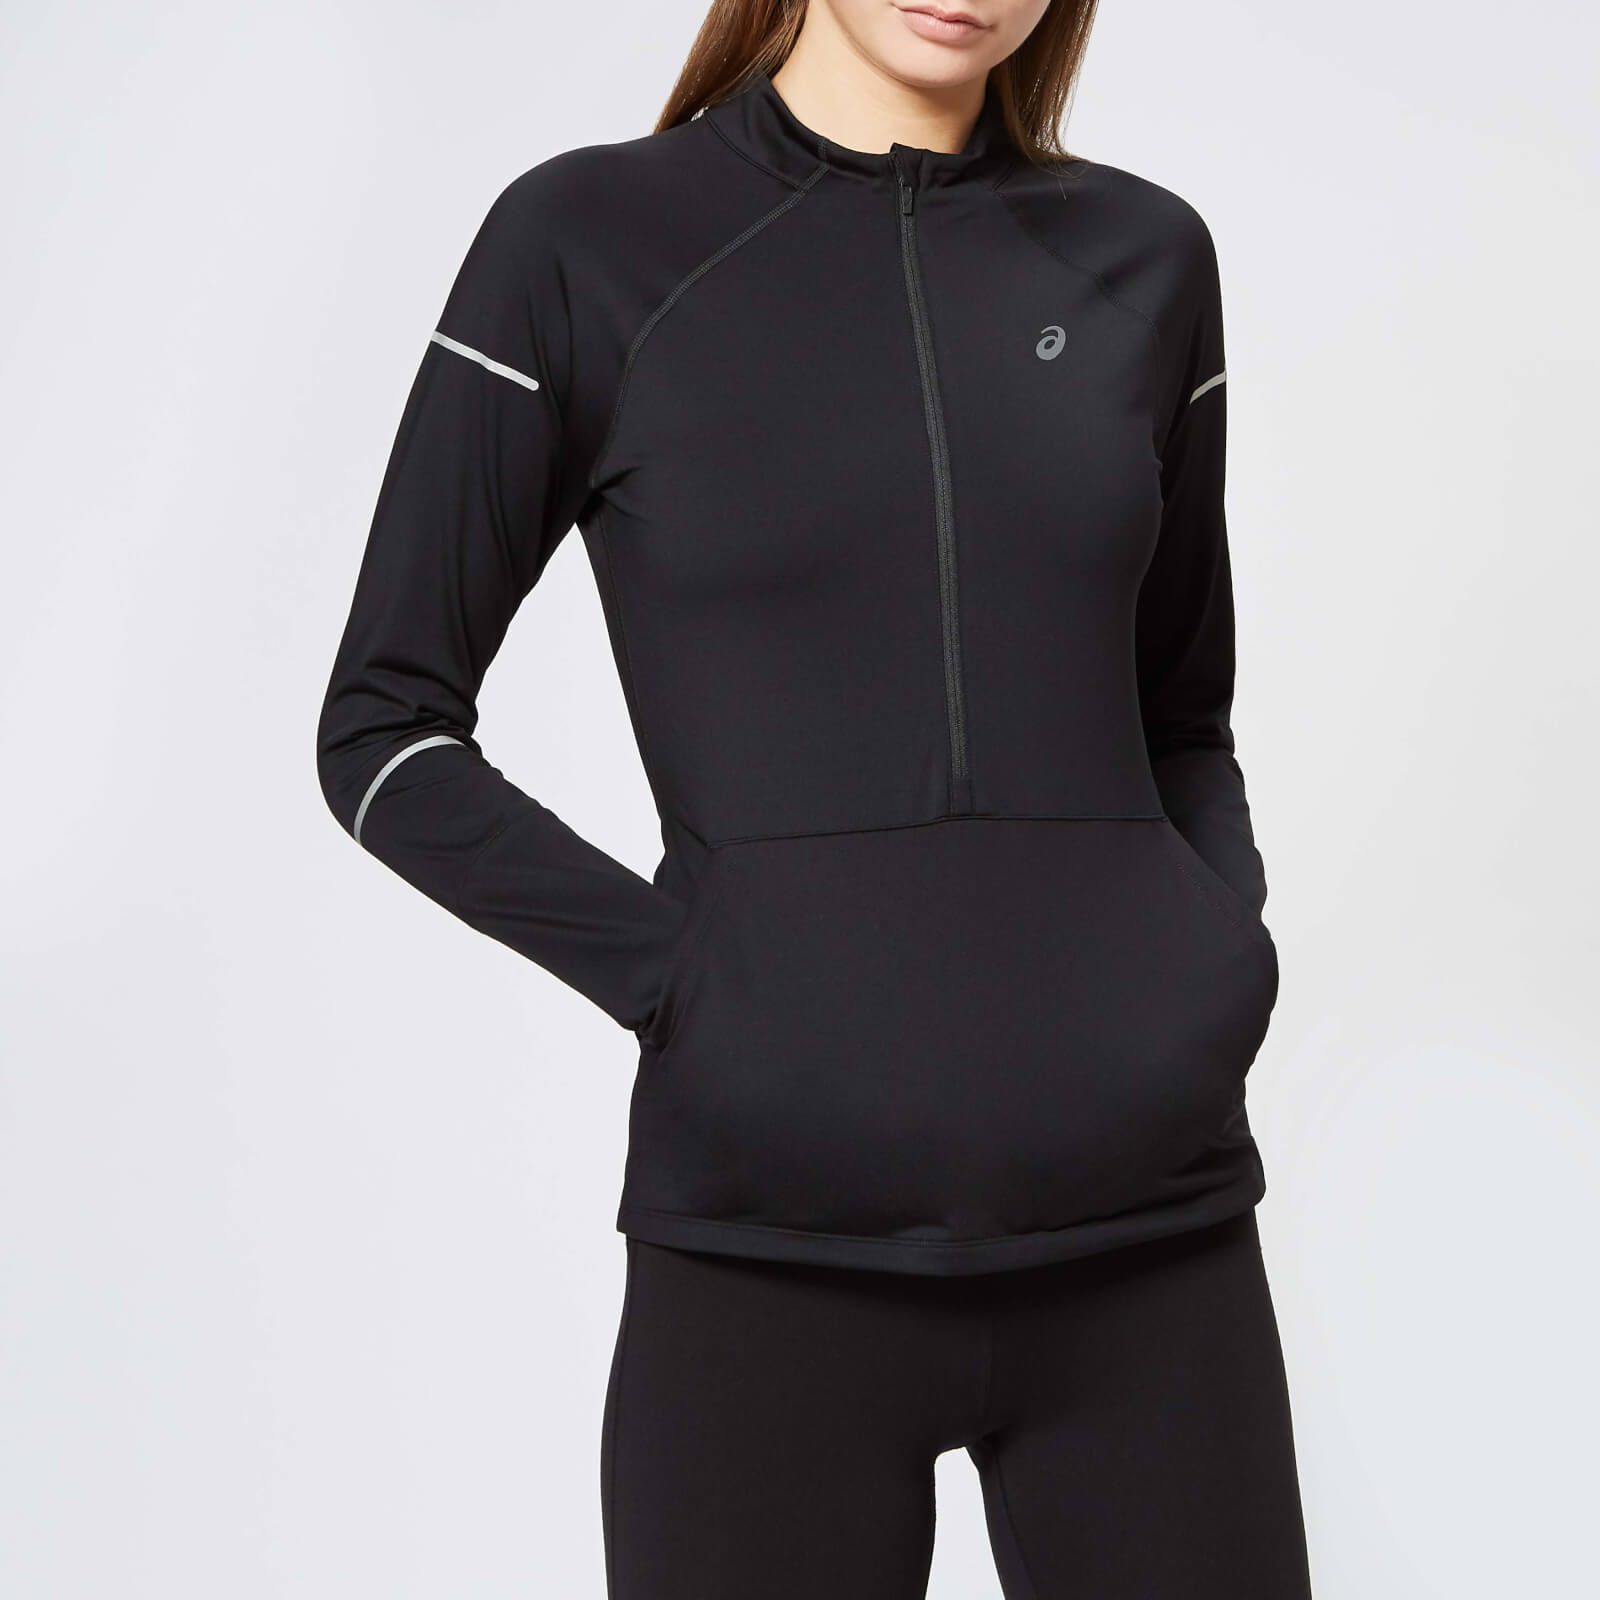 7ed87fcfc162 Asics Women's Lite-Show Winter Long Sleeve 1/2 Zip Top - Performance Black  | ProBikeKit UK